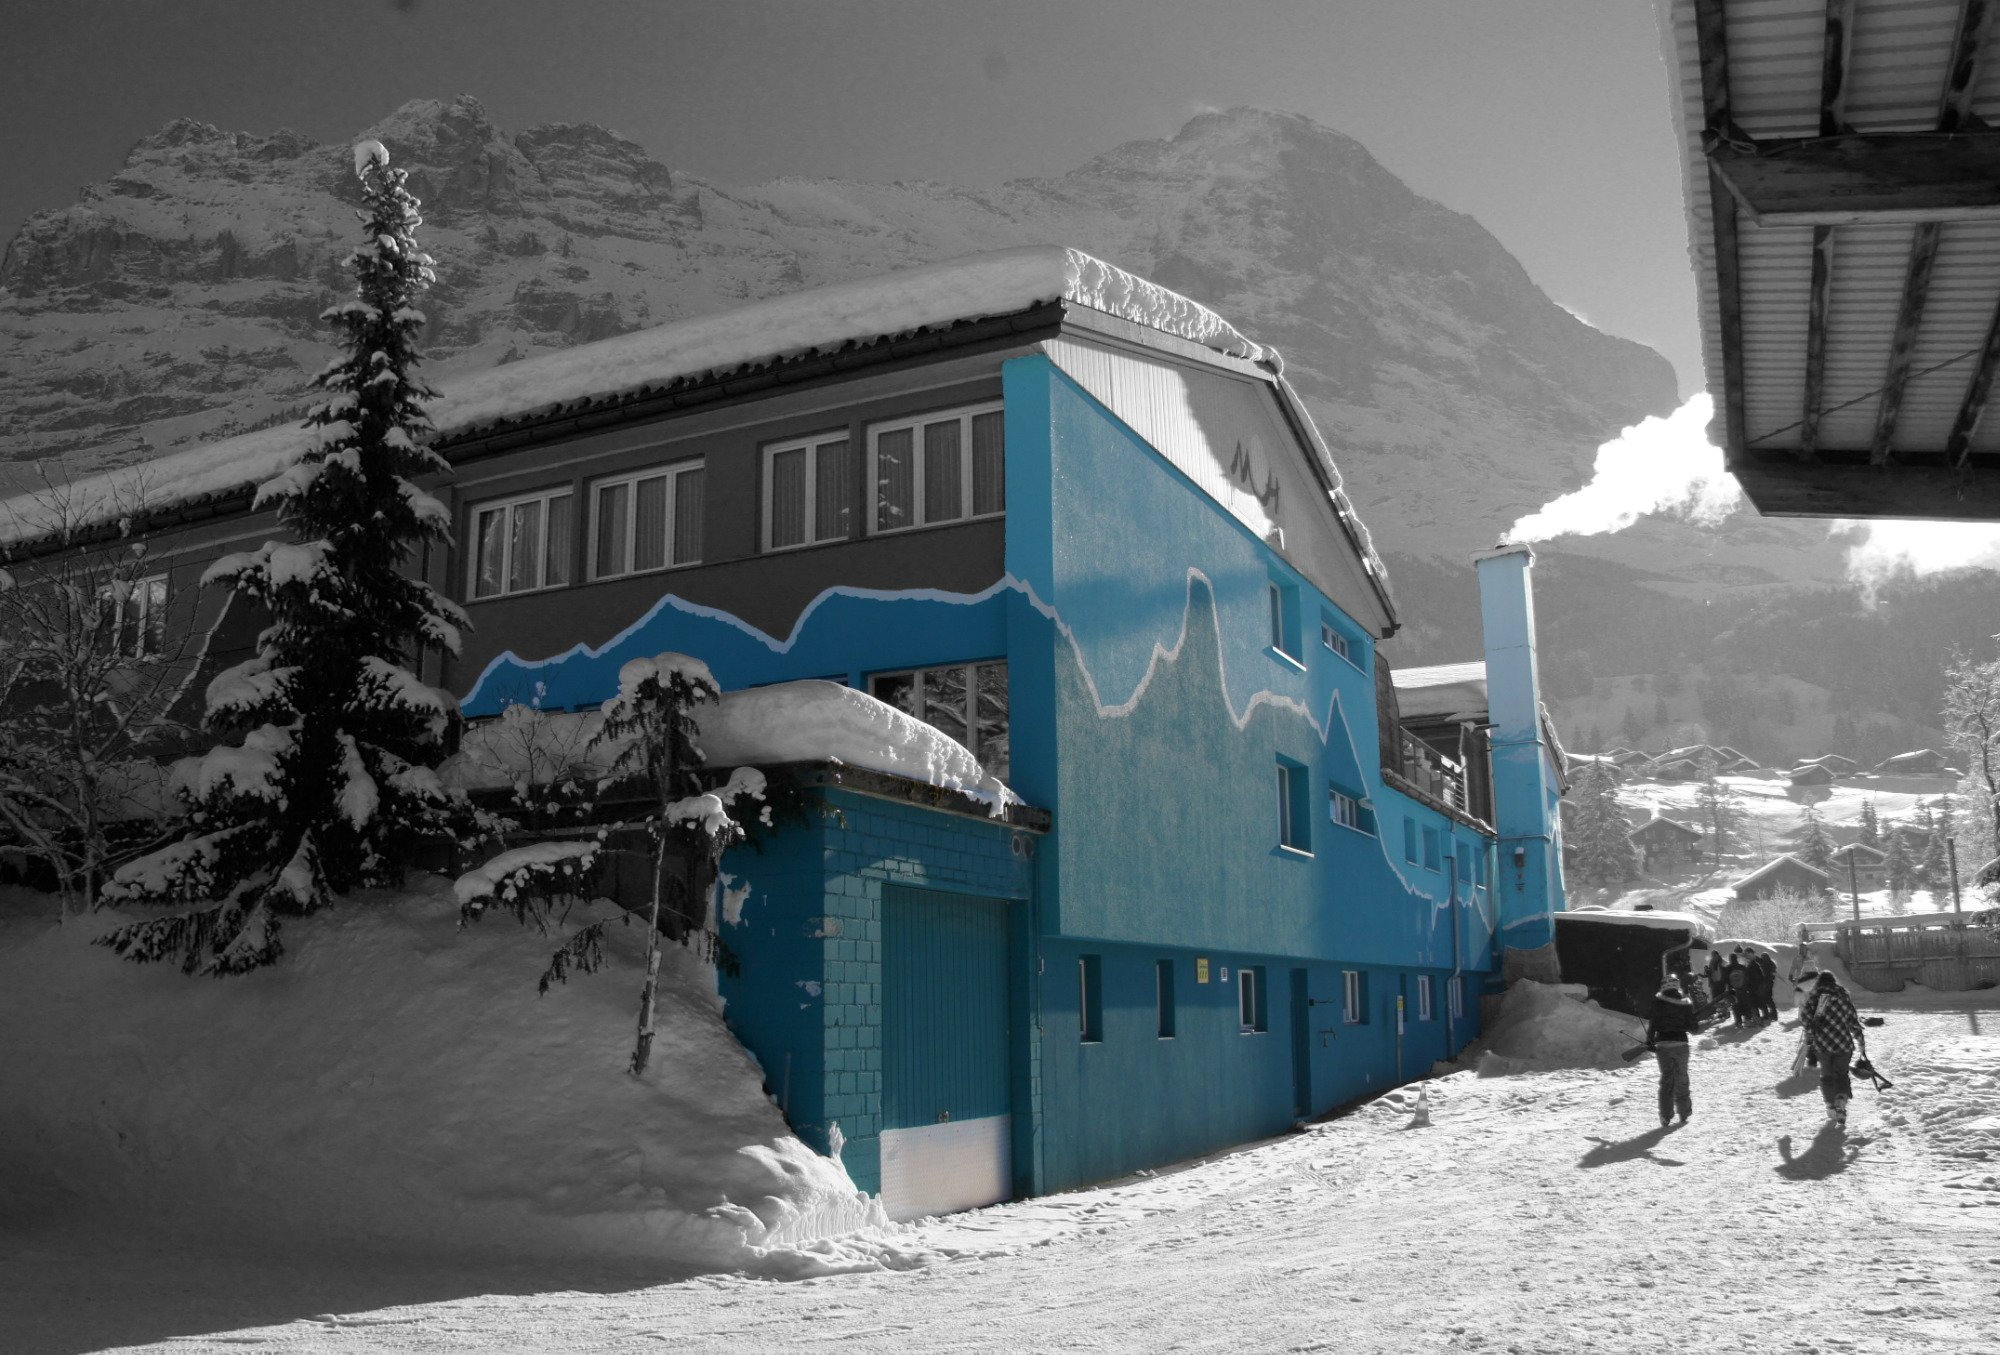 Mountain Hostel Grindelwald